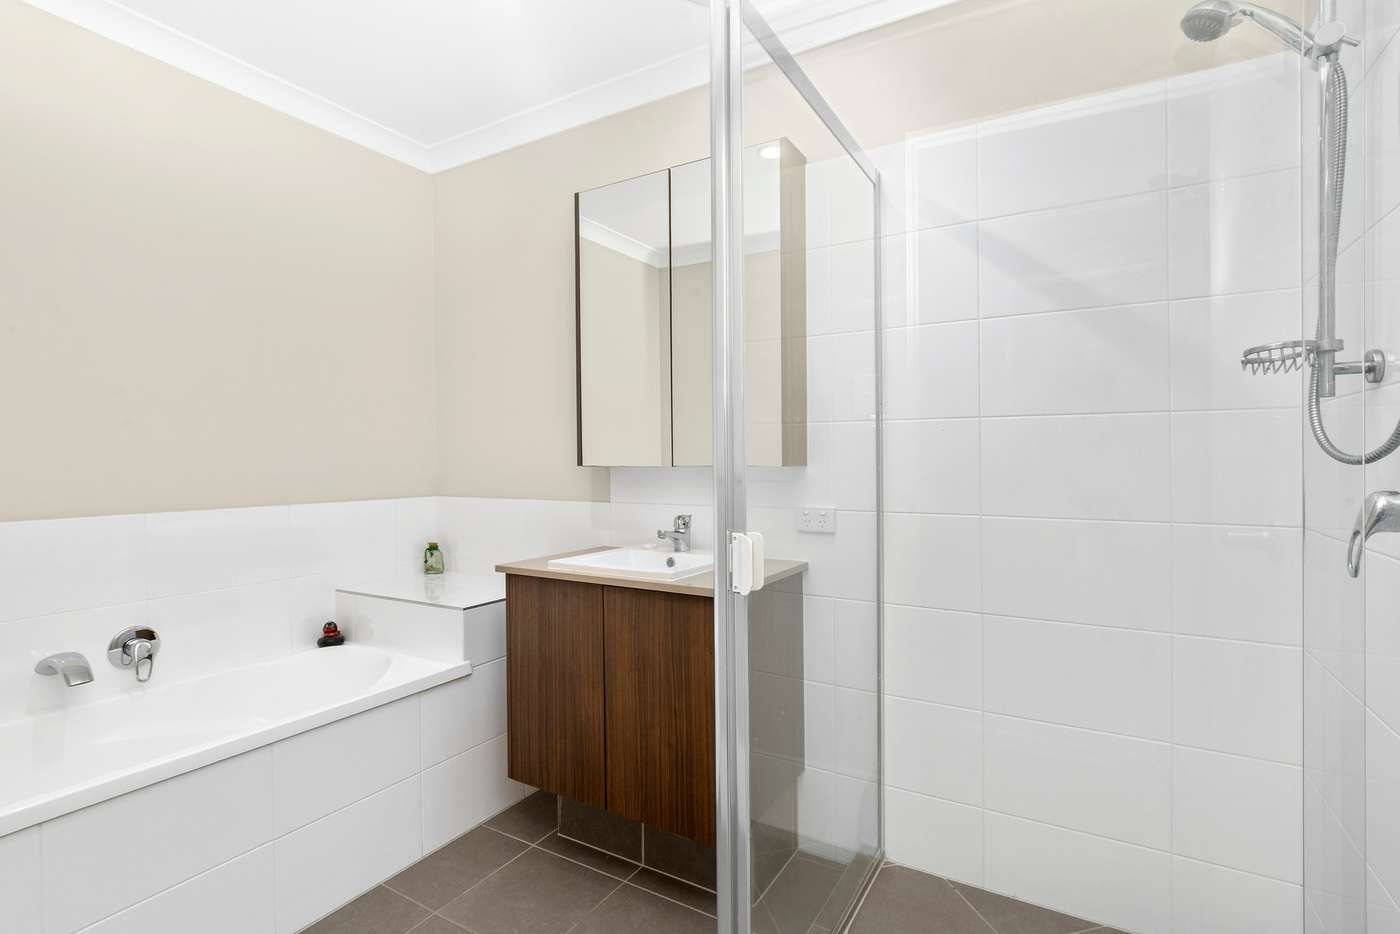 Seventh view of Homely house listing, 18 Oakover Avenue, Ormeau Hills QLD 4208